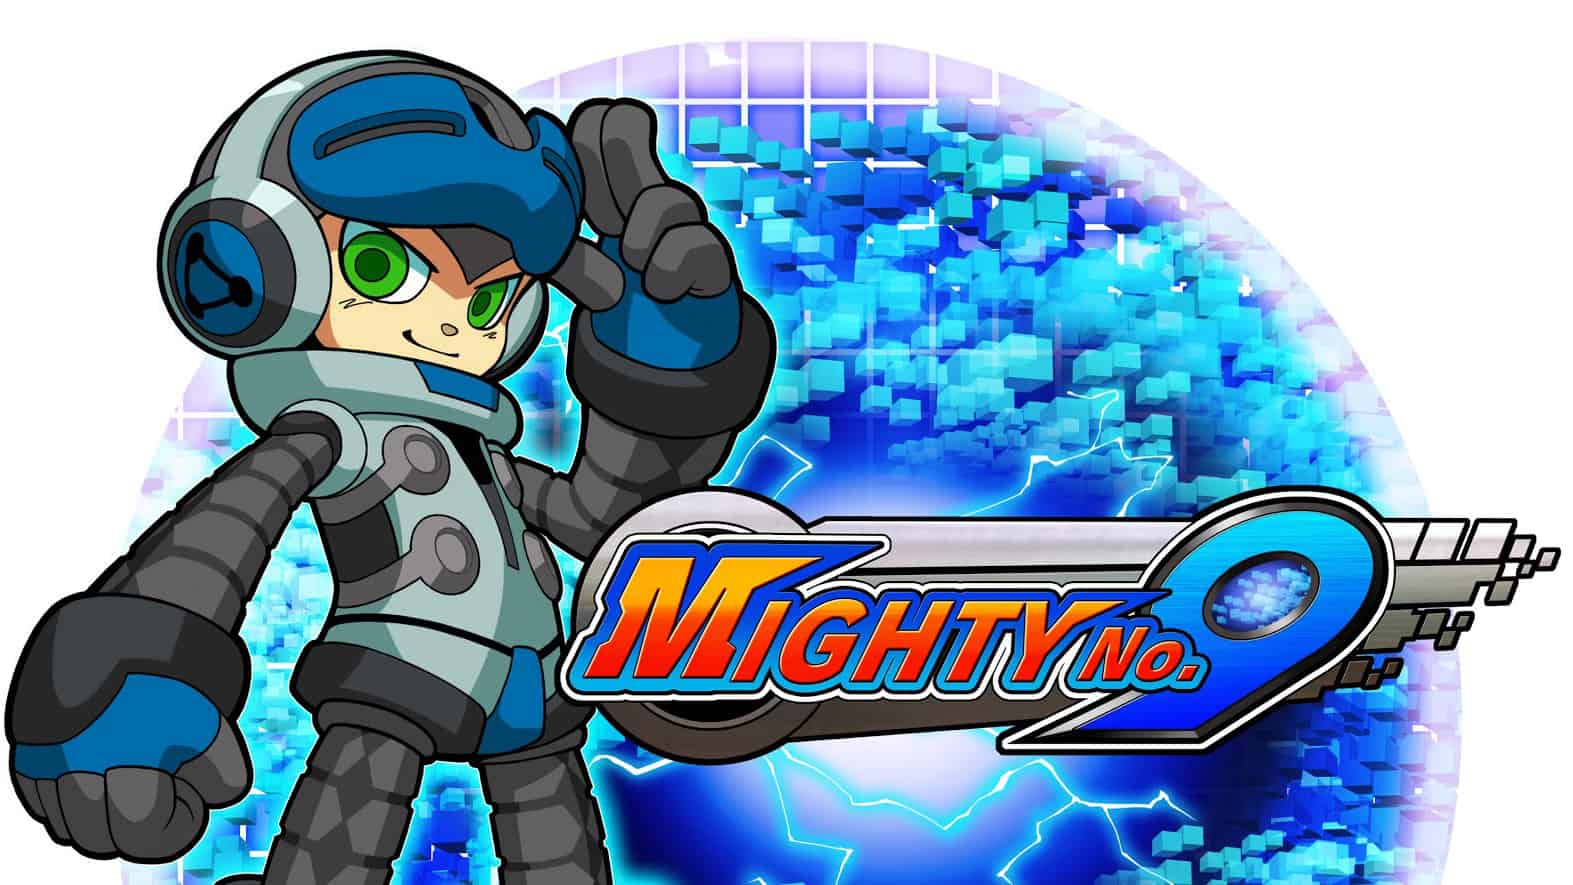 Mighty No 9 immagine in evidenza